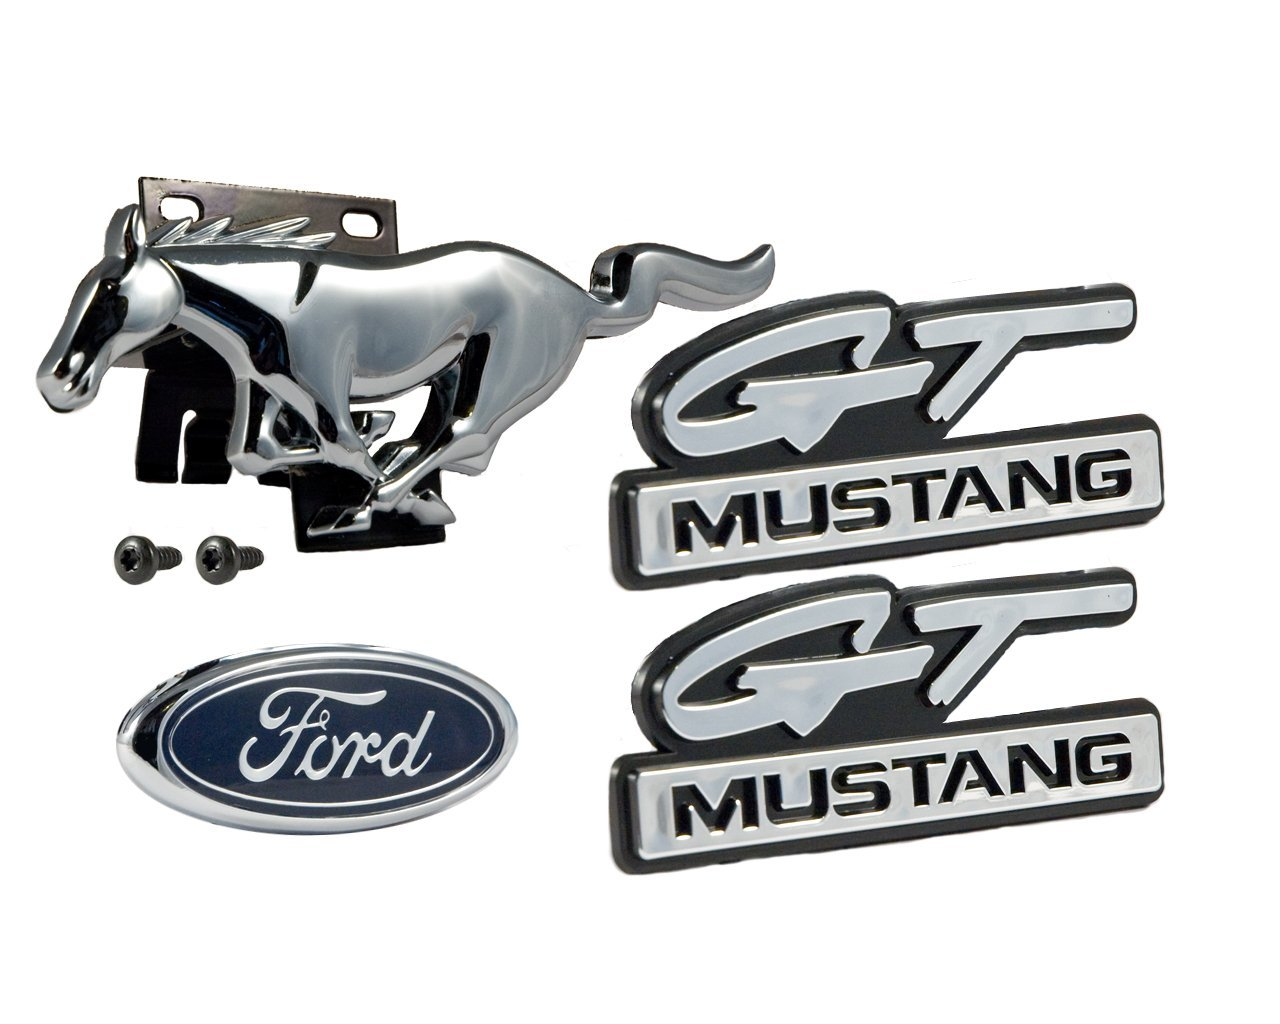 hight resolution of 1994 1995 ford mustang gt 5 0l 4pc emblem set front grille running horse